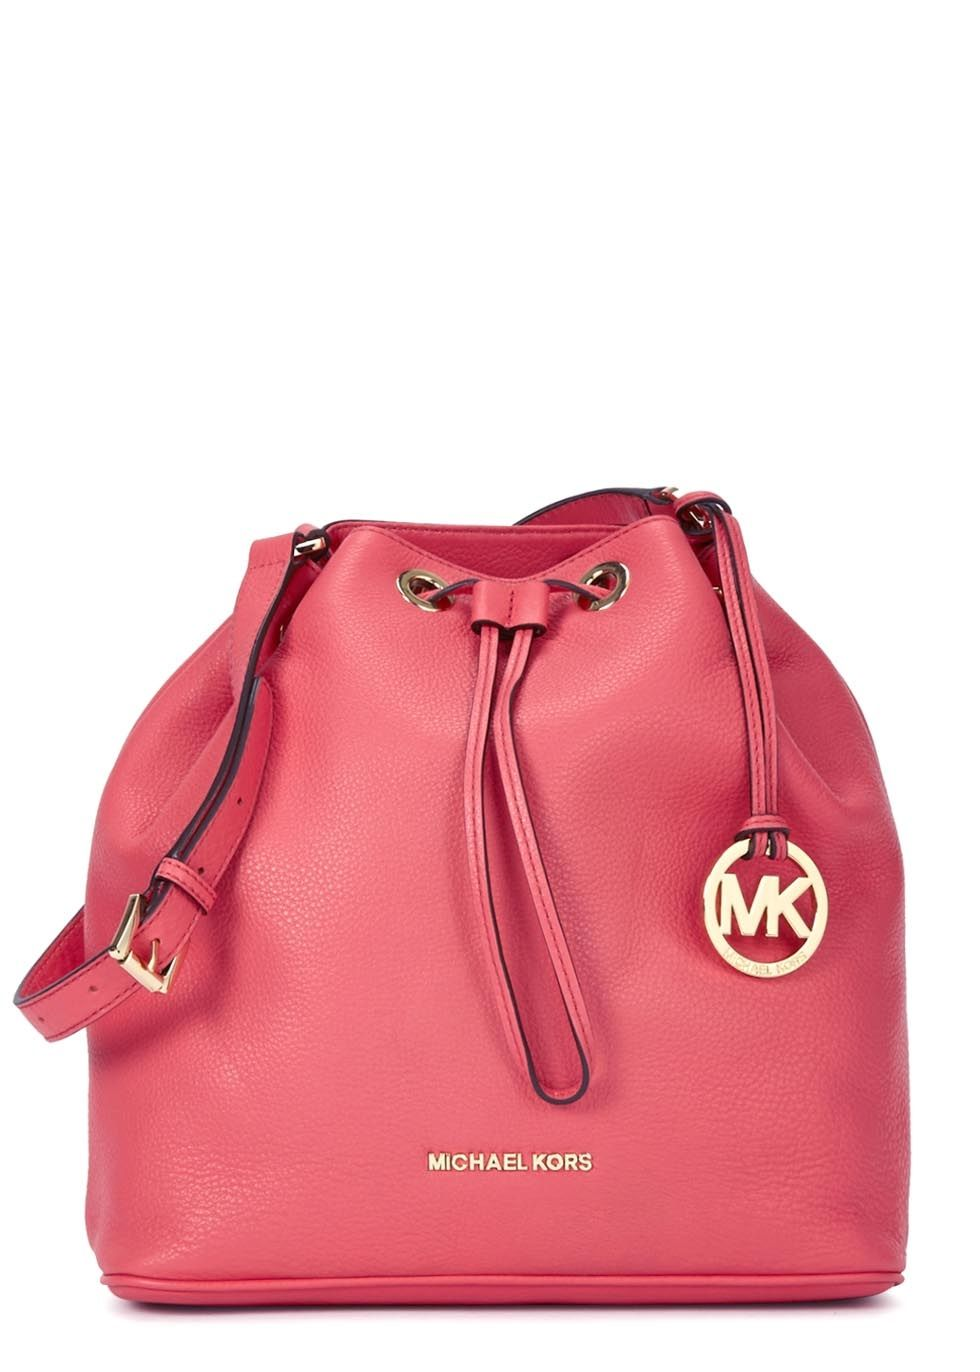 f4de376f32 Michael Kors coral grained leather bucket bag